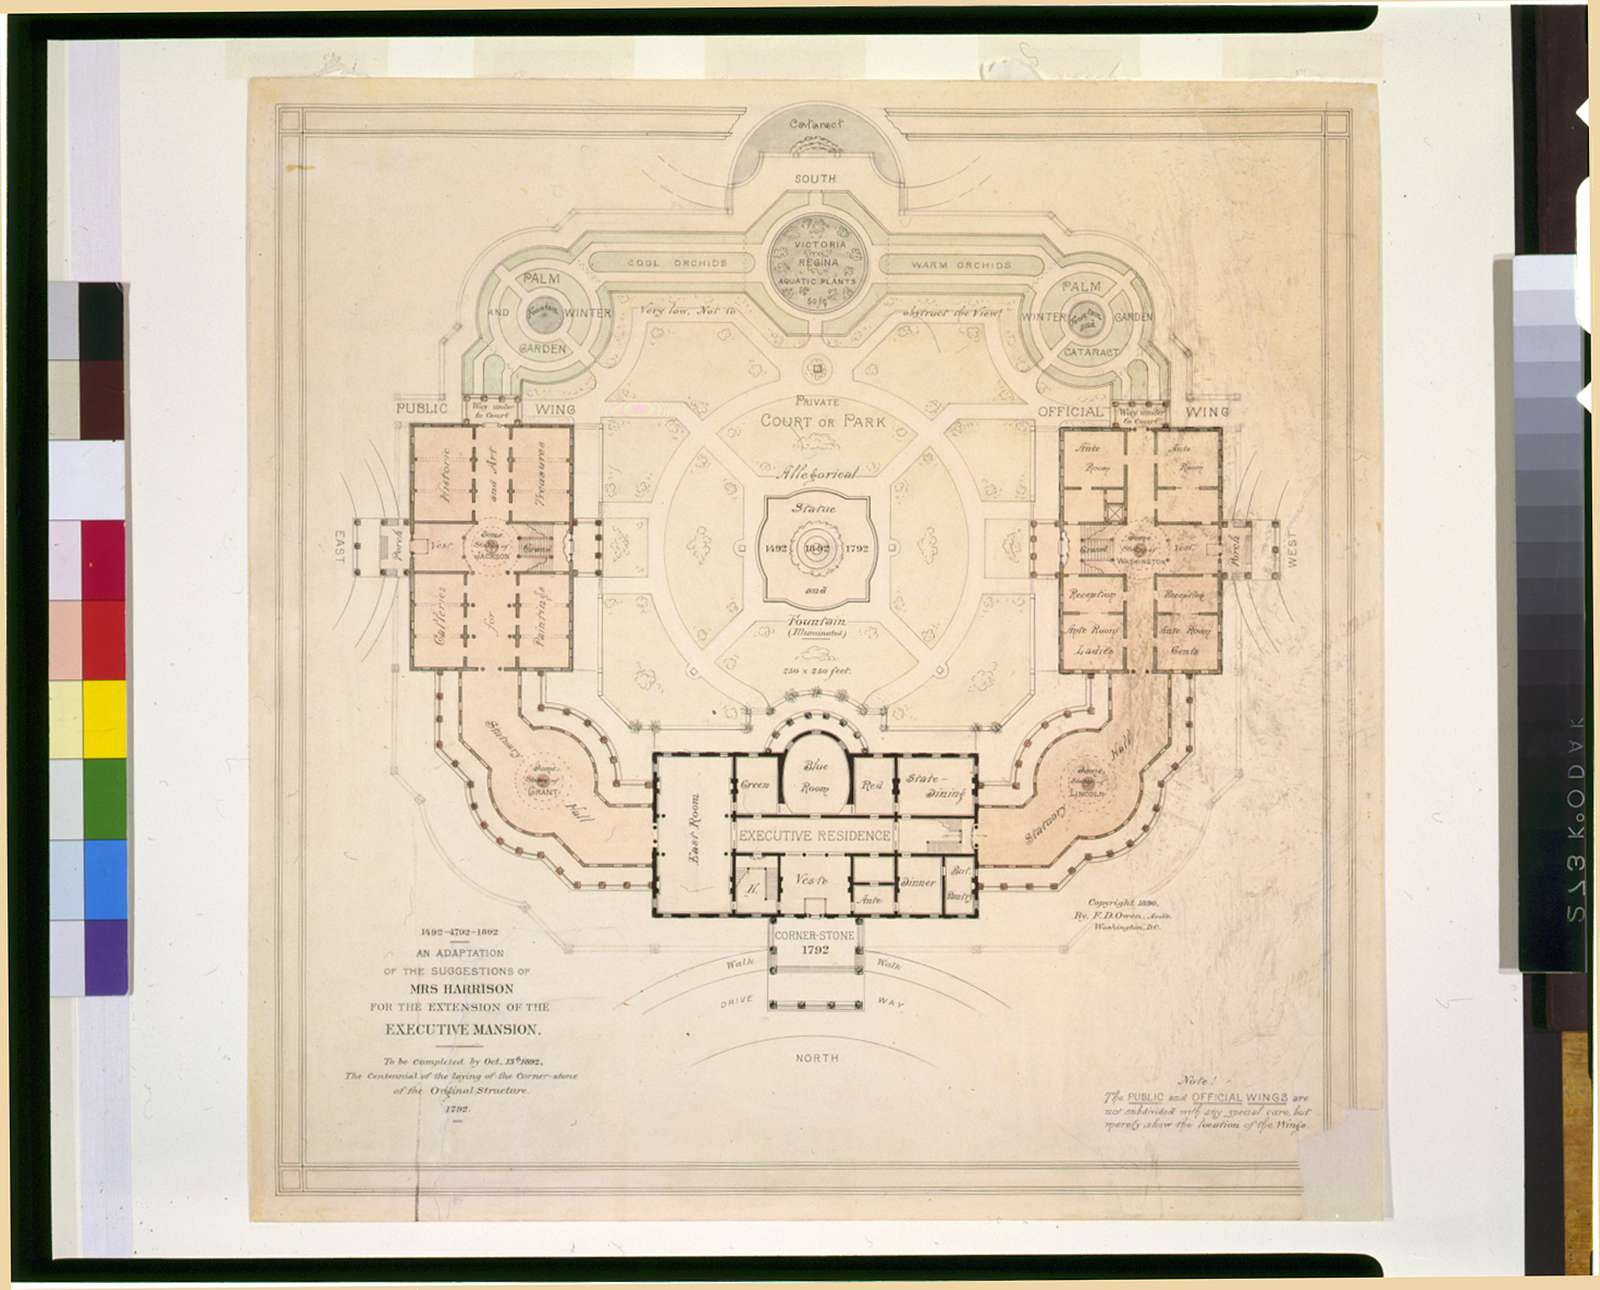 [Alterations to the Executive Mansion, for Mrs. Benjamin Harrison, Pennsylvania Avenue, N.W., Washington, D.C. Site plan, with suggestions] / F.D. Owen, Arch't., Washington, D.C.